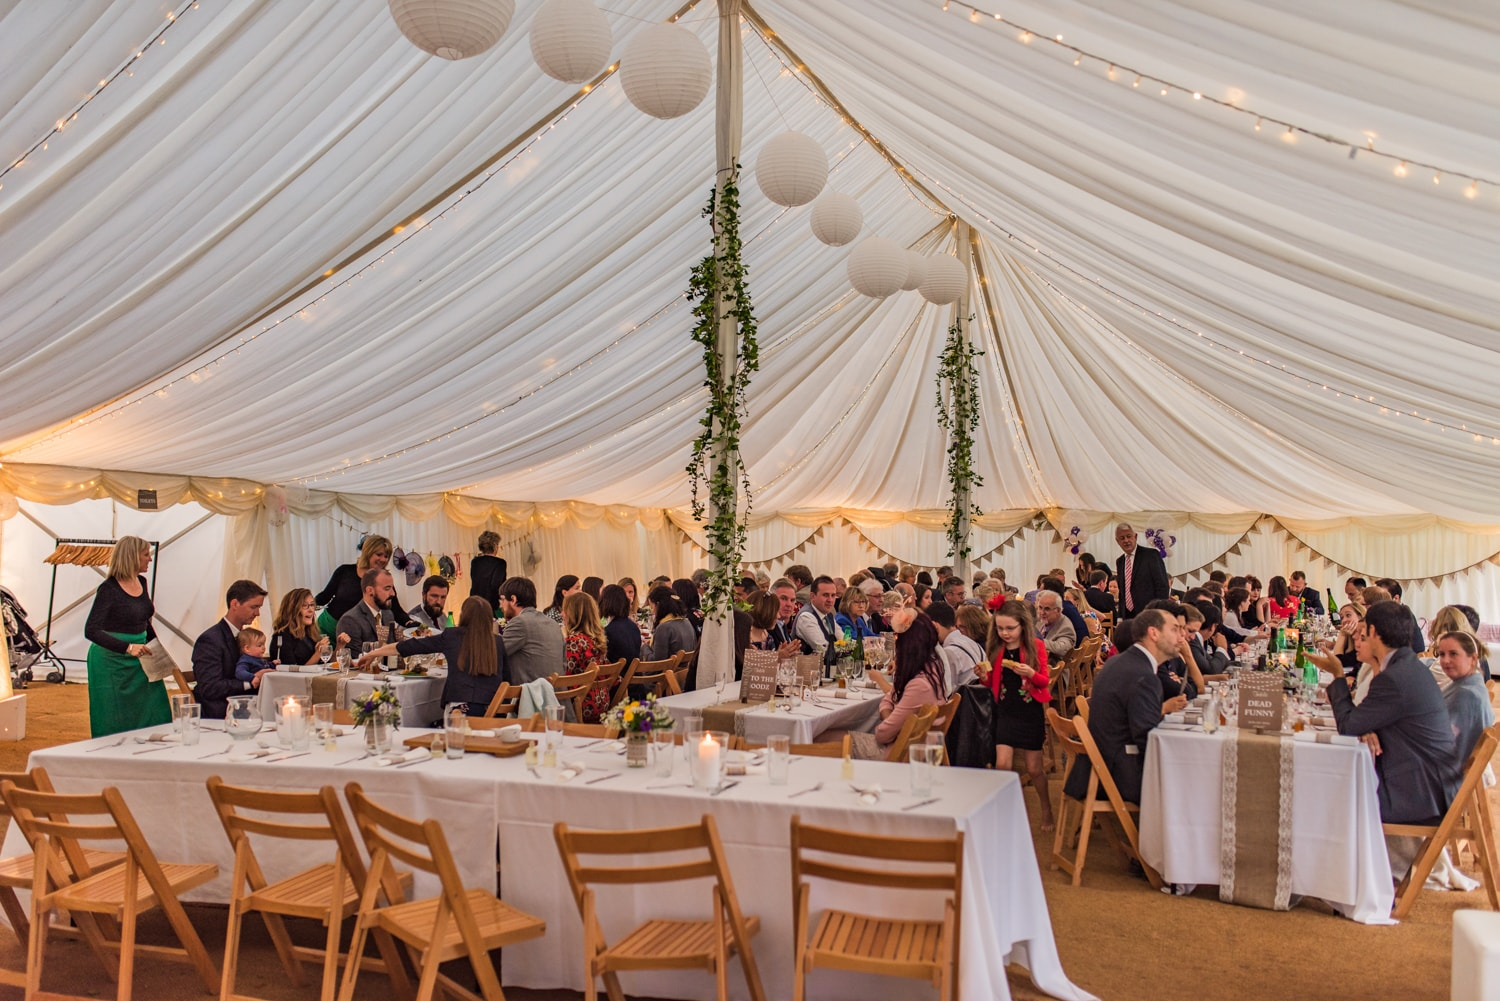 105-dorset-marquee-wedding.jpg